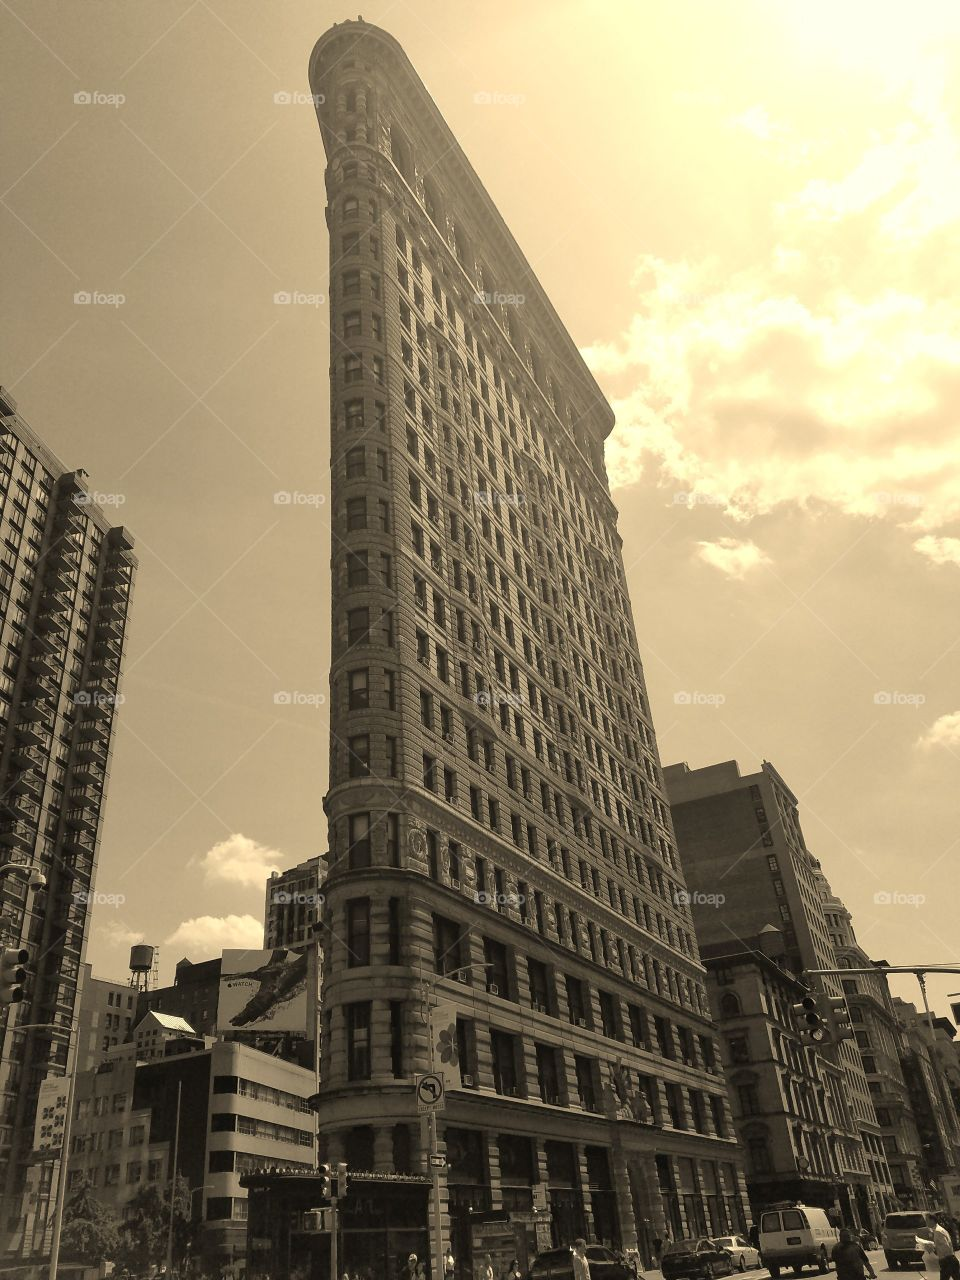 Flatiron Building on 23rd Street near Madison Square Park - Sepia Filter - May 19th 2017 in the afternoon